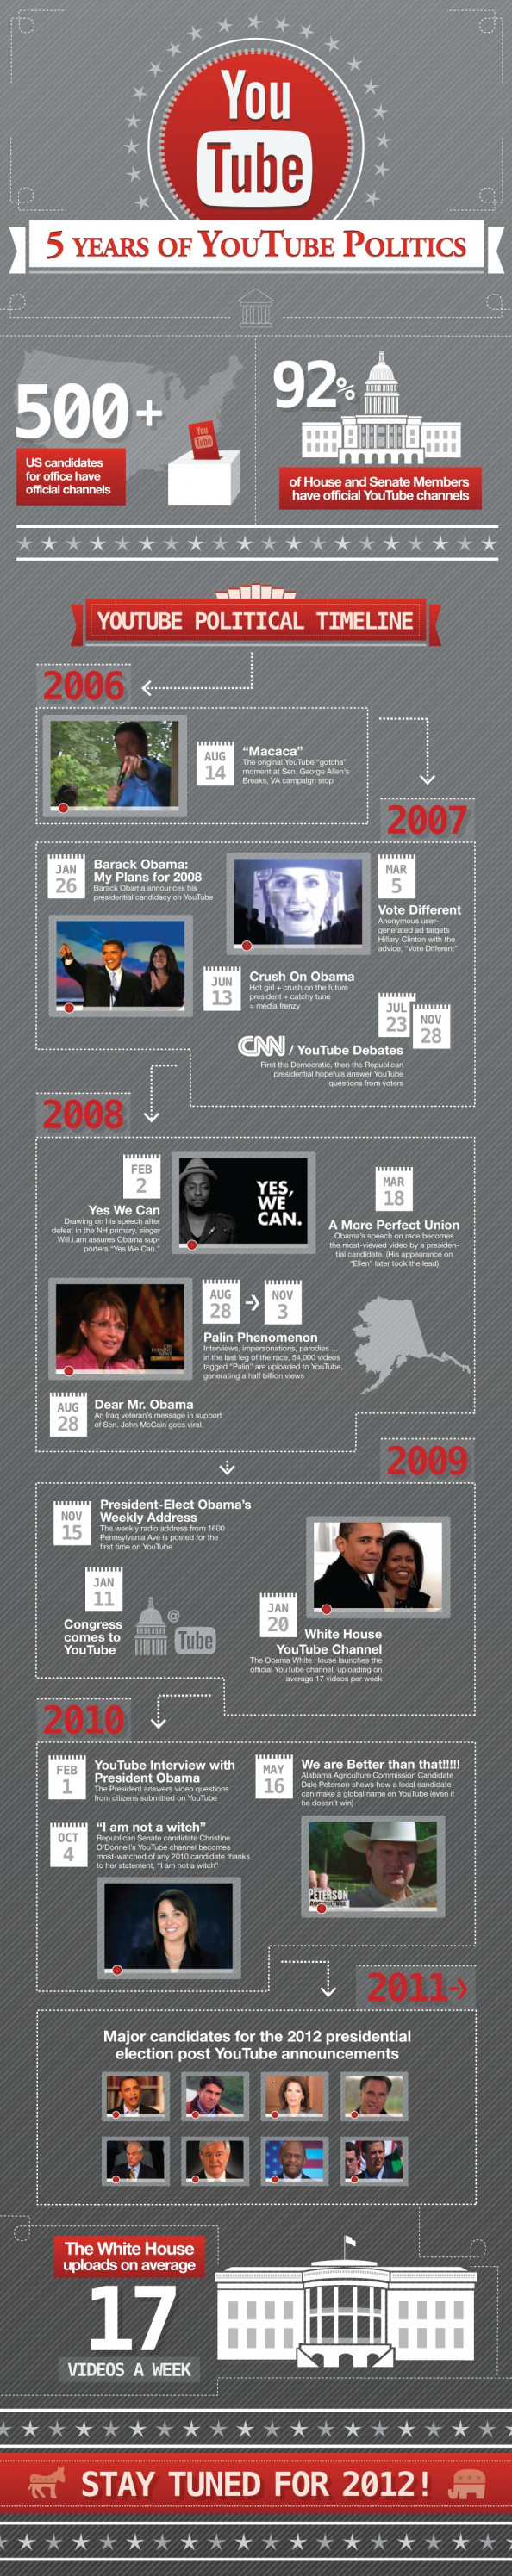 5 Years of Youtube Politics Infographic